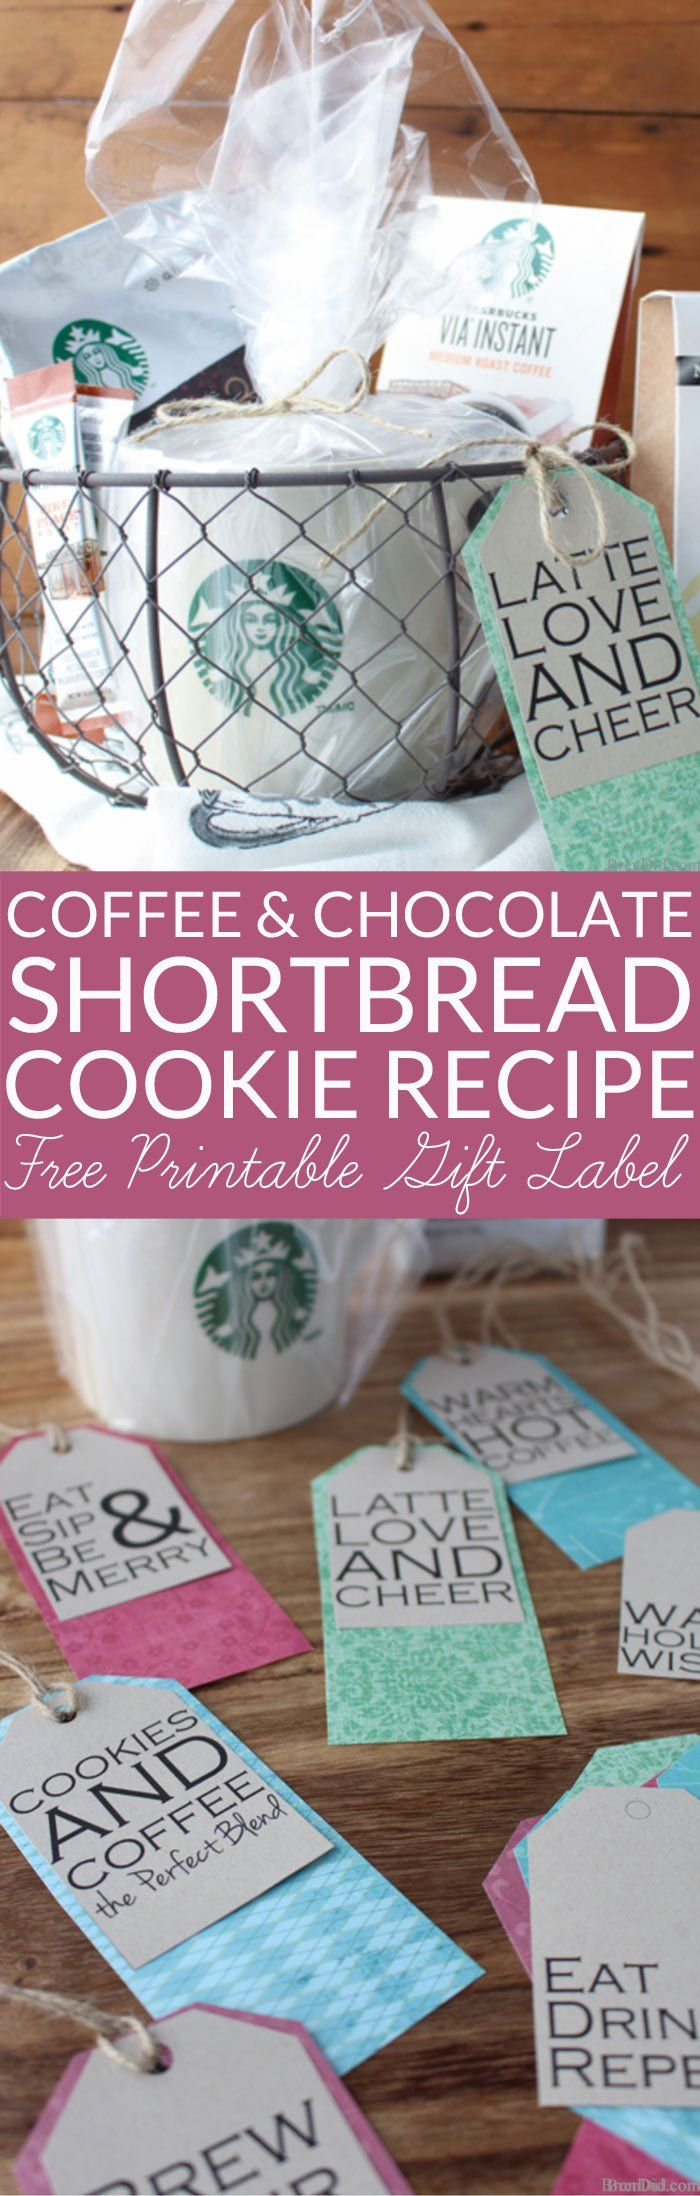 This Coffee and Chocolate Shortbread Recipe is perfect for cookie exchanges and…